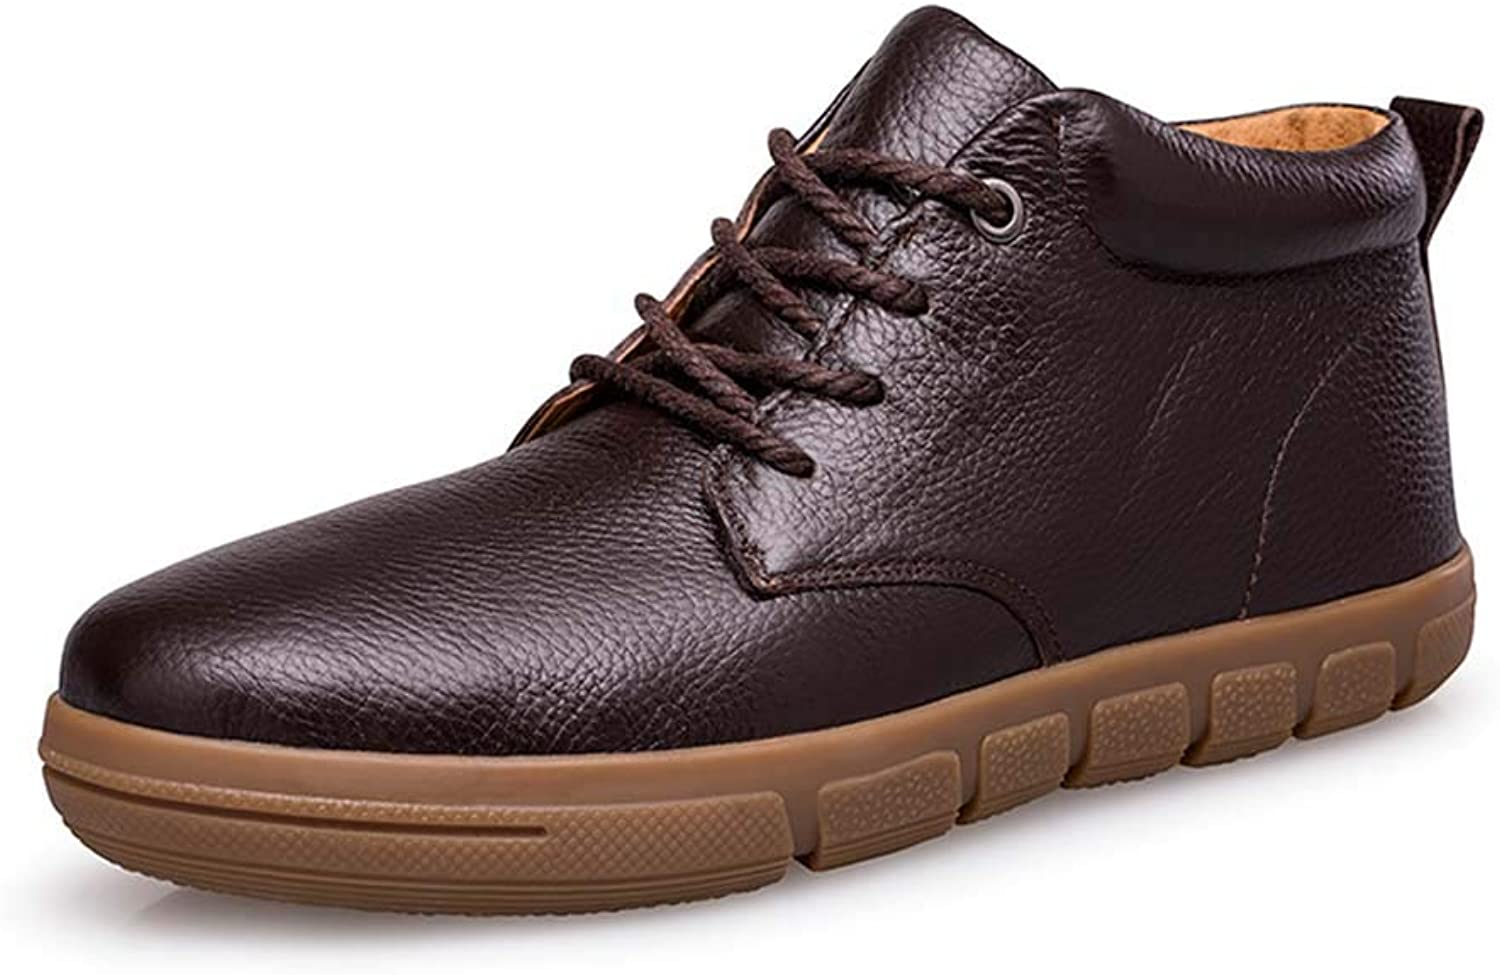 Men's Business Casual Work shoes Flat Soft and Comfortable Non-Slip